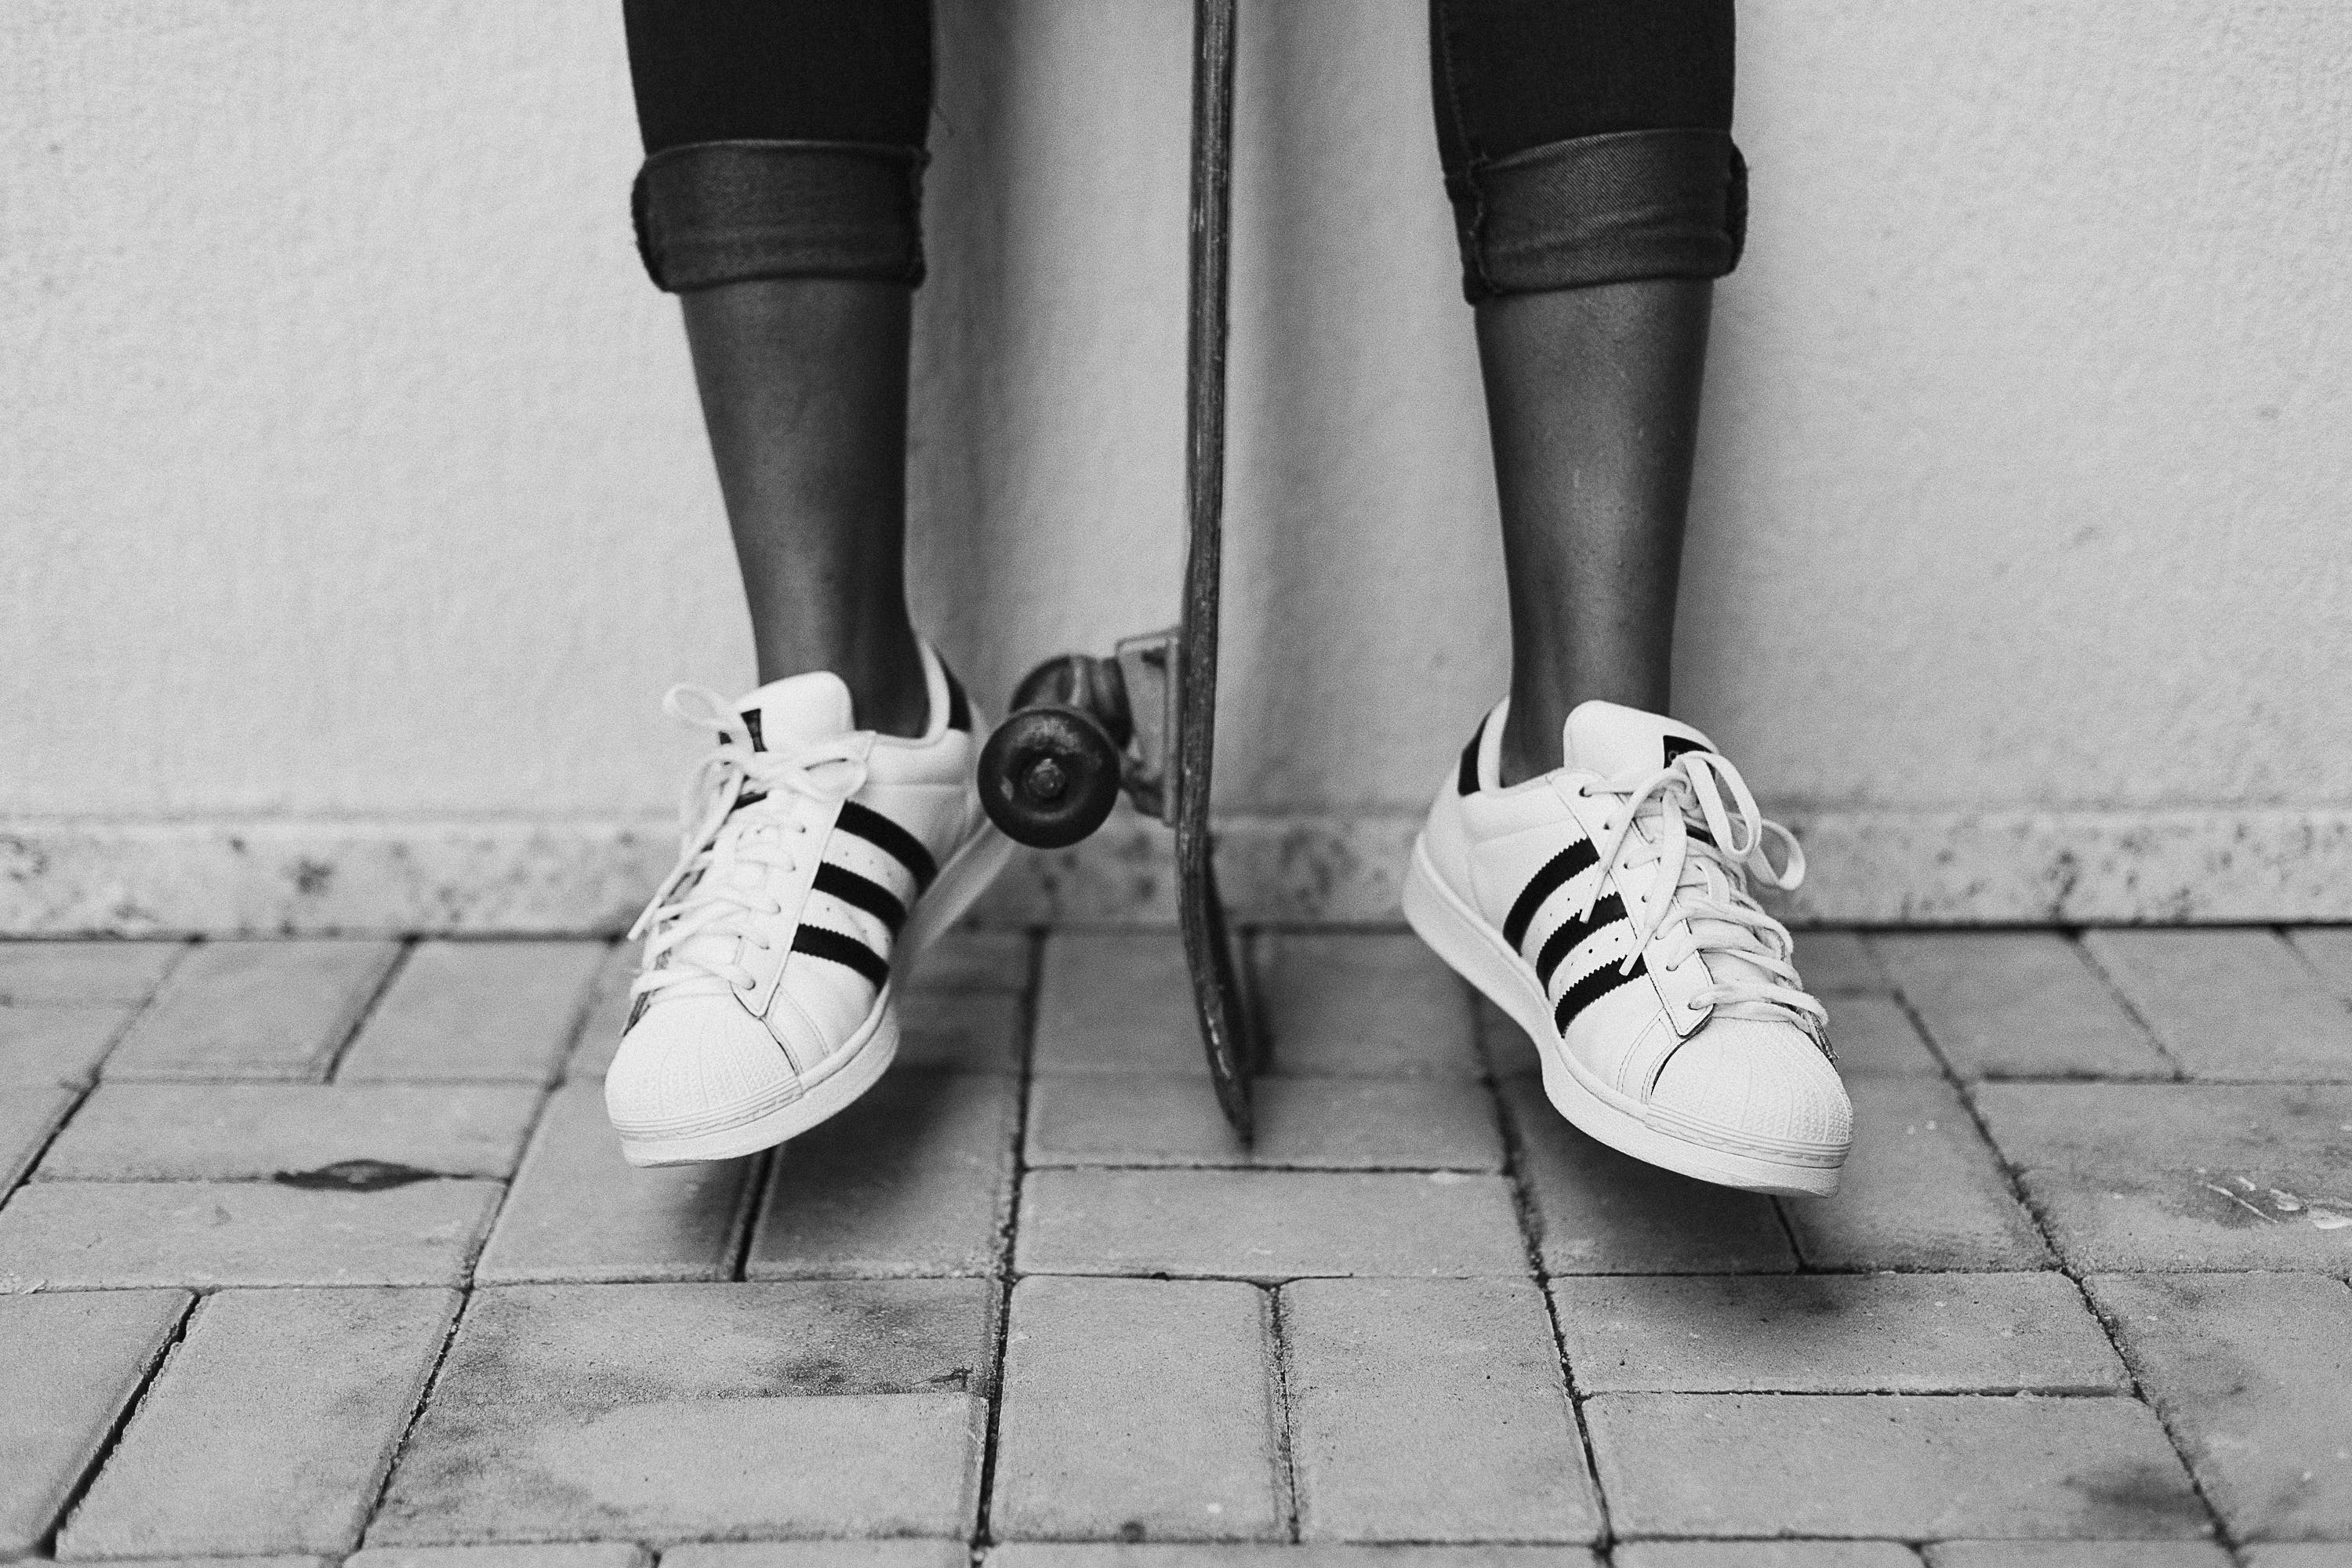 Free stock photo of black-and-white, person, feet, legs